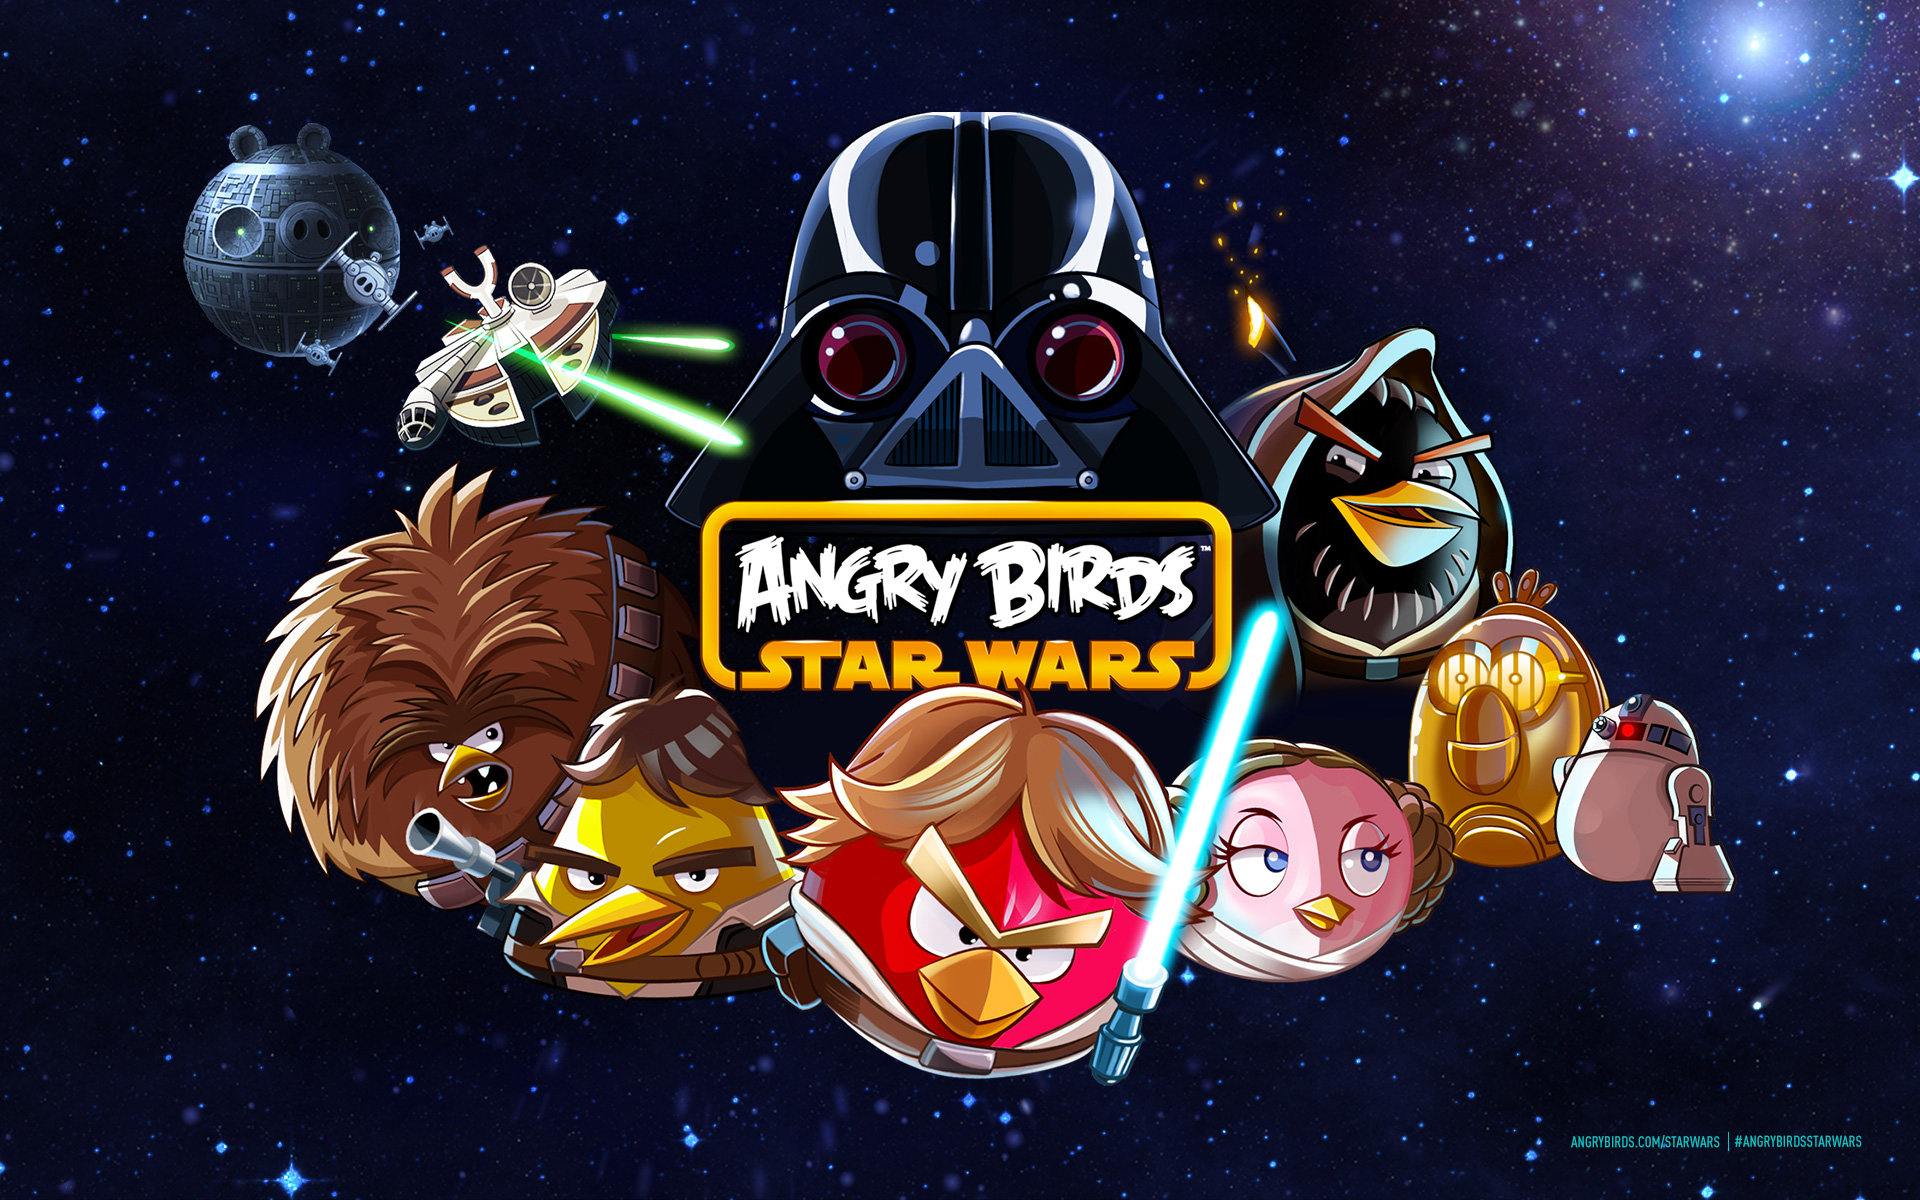 Angry Birds Star Wars Wallpaper - Angry Birds Wallpaper